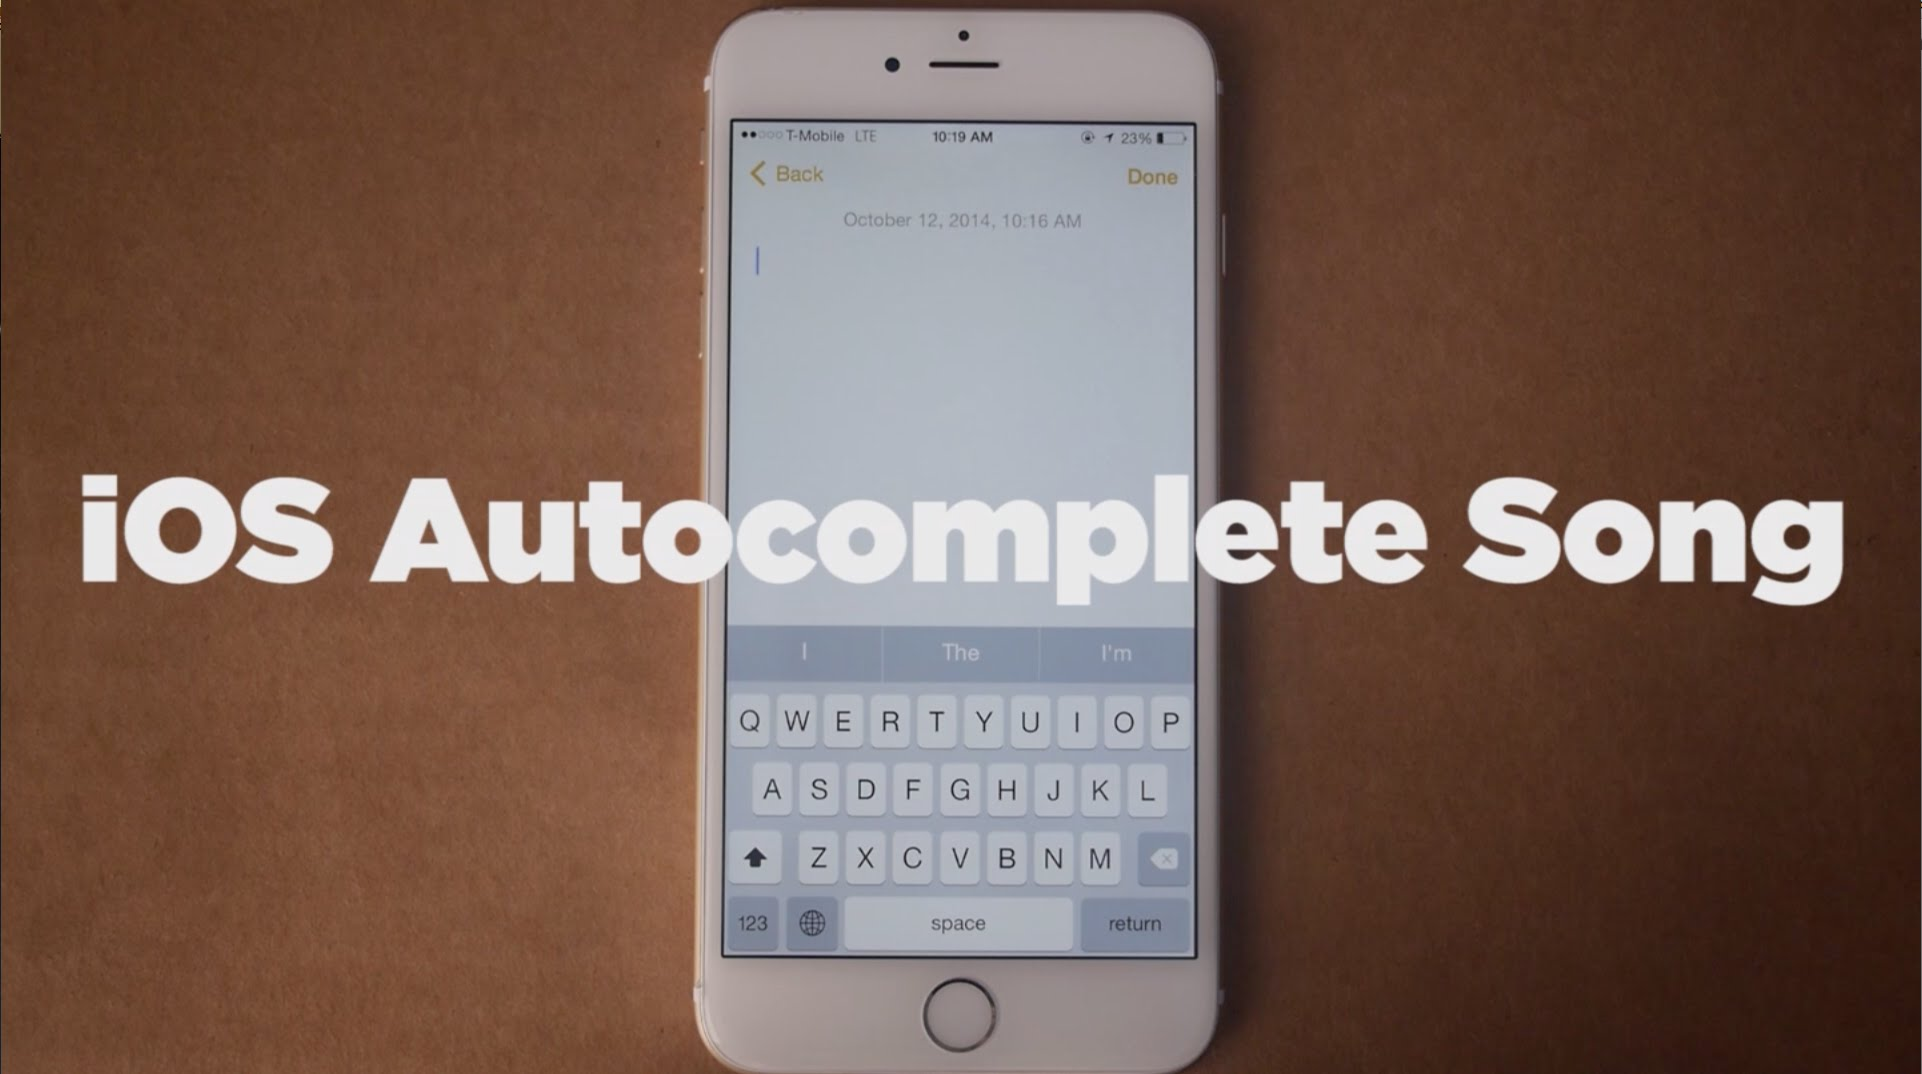 maxresdefault6SM6WNS5 iOS Autocomplete Song